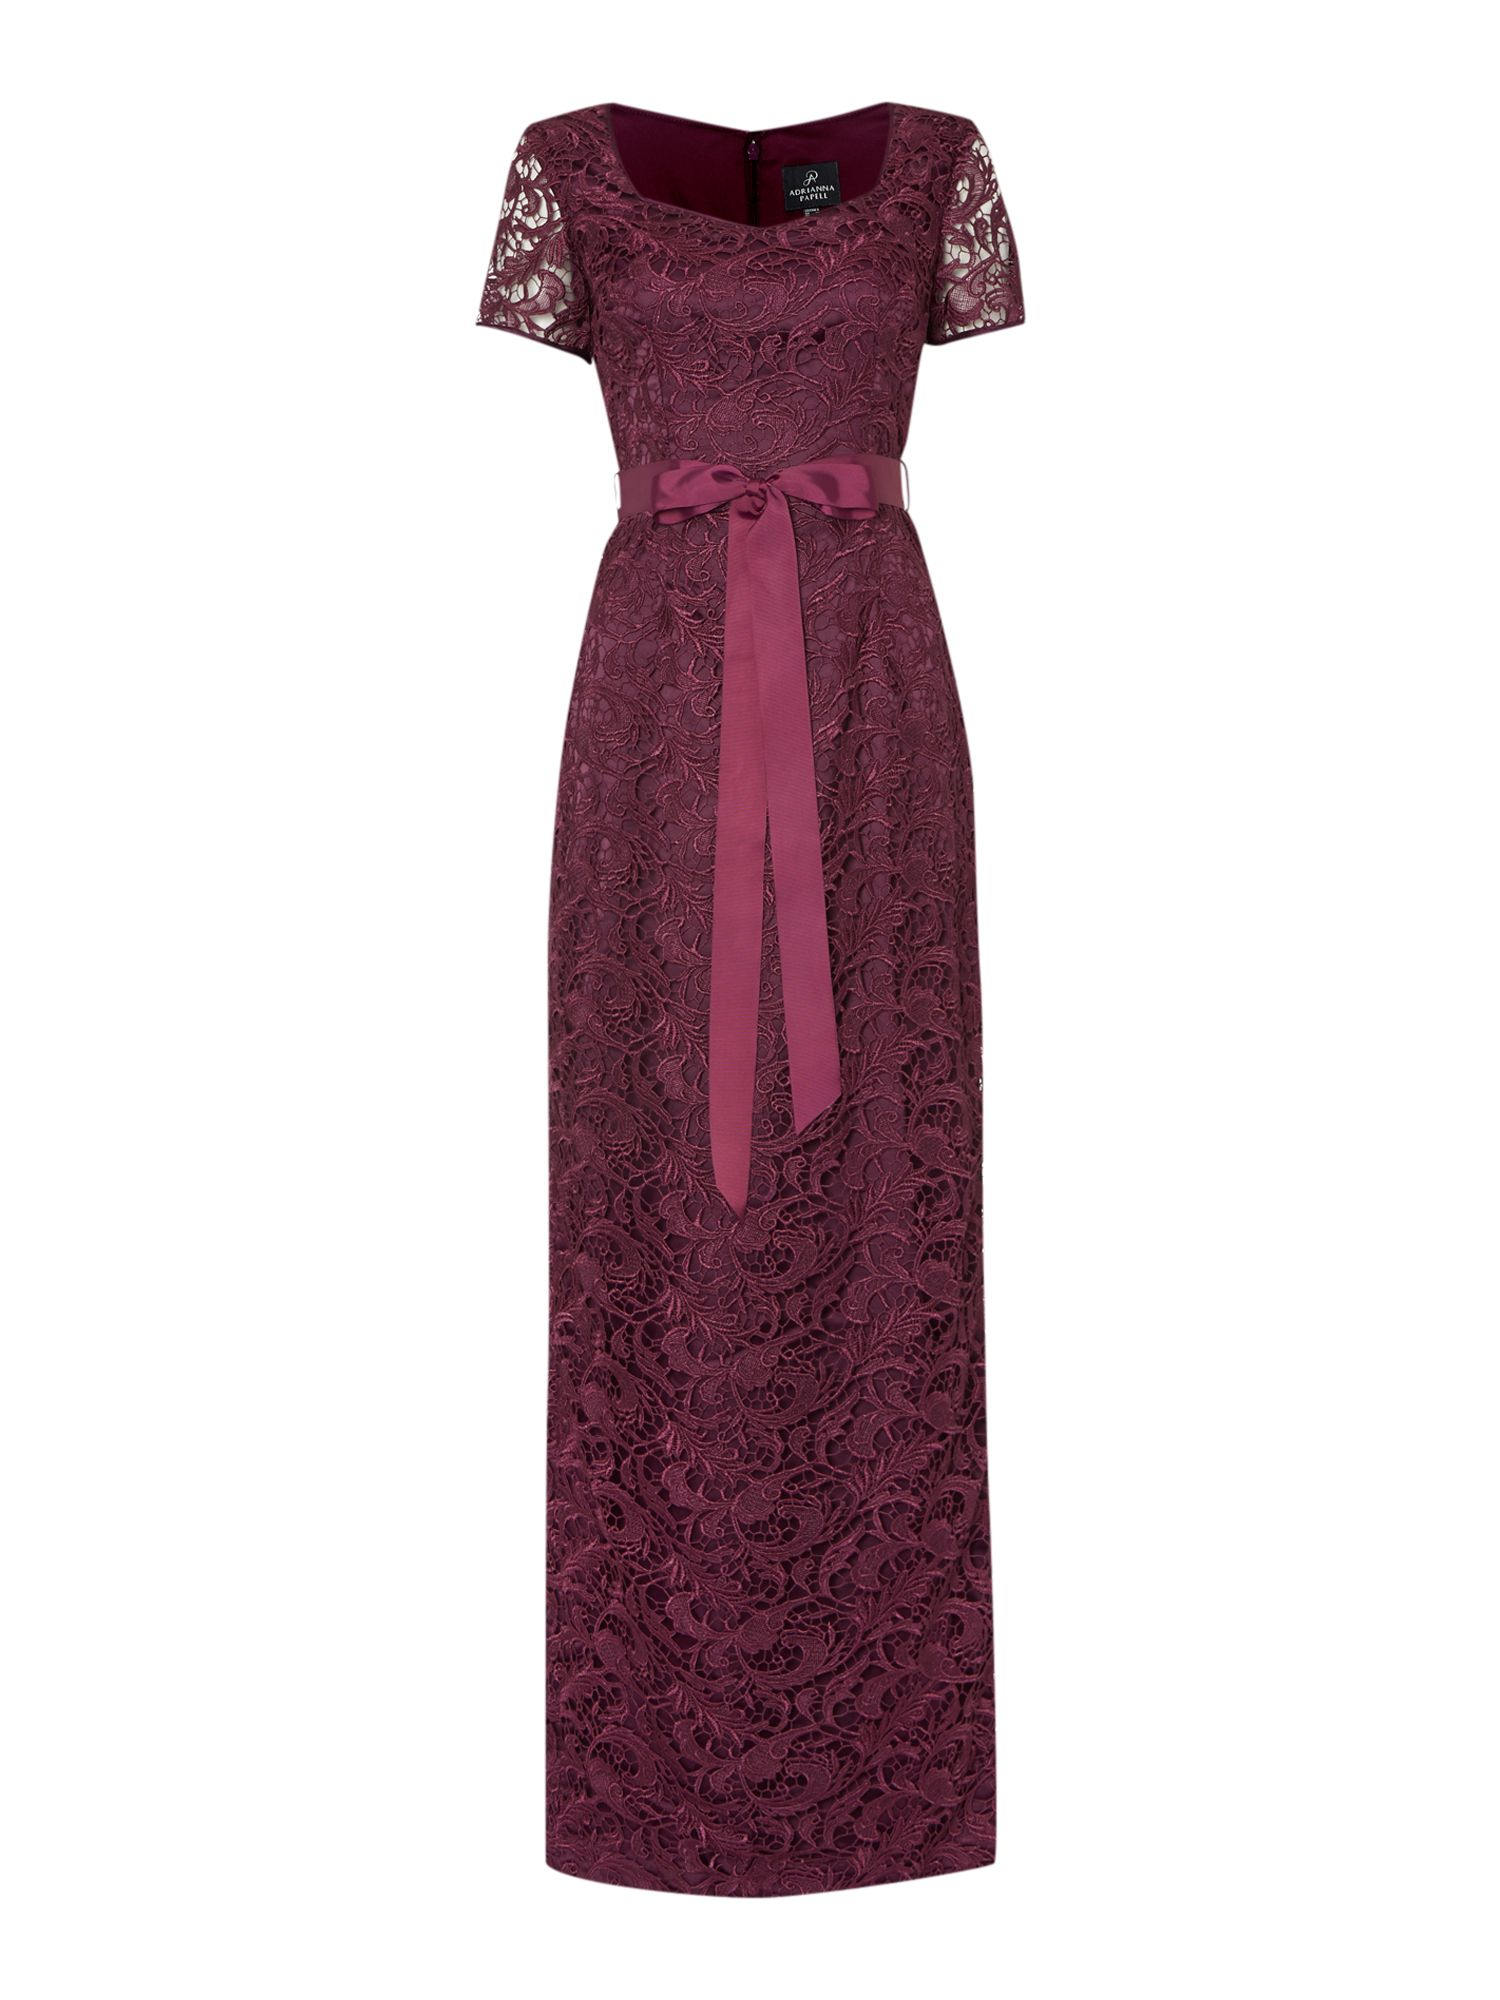 Adrianna Papell Evening Long Cap Sleeve guipure lace gown $80.00 AT vintagedancer.com